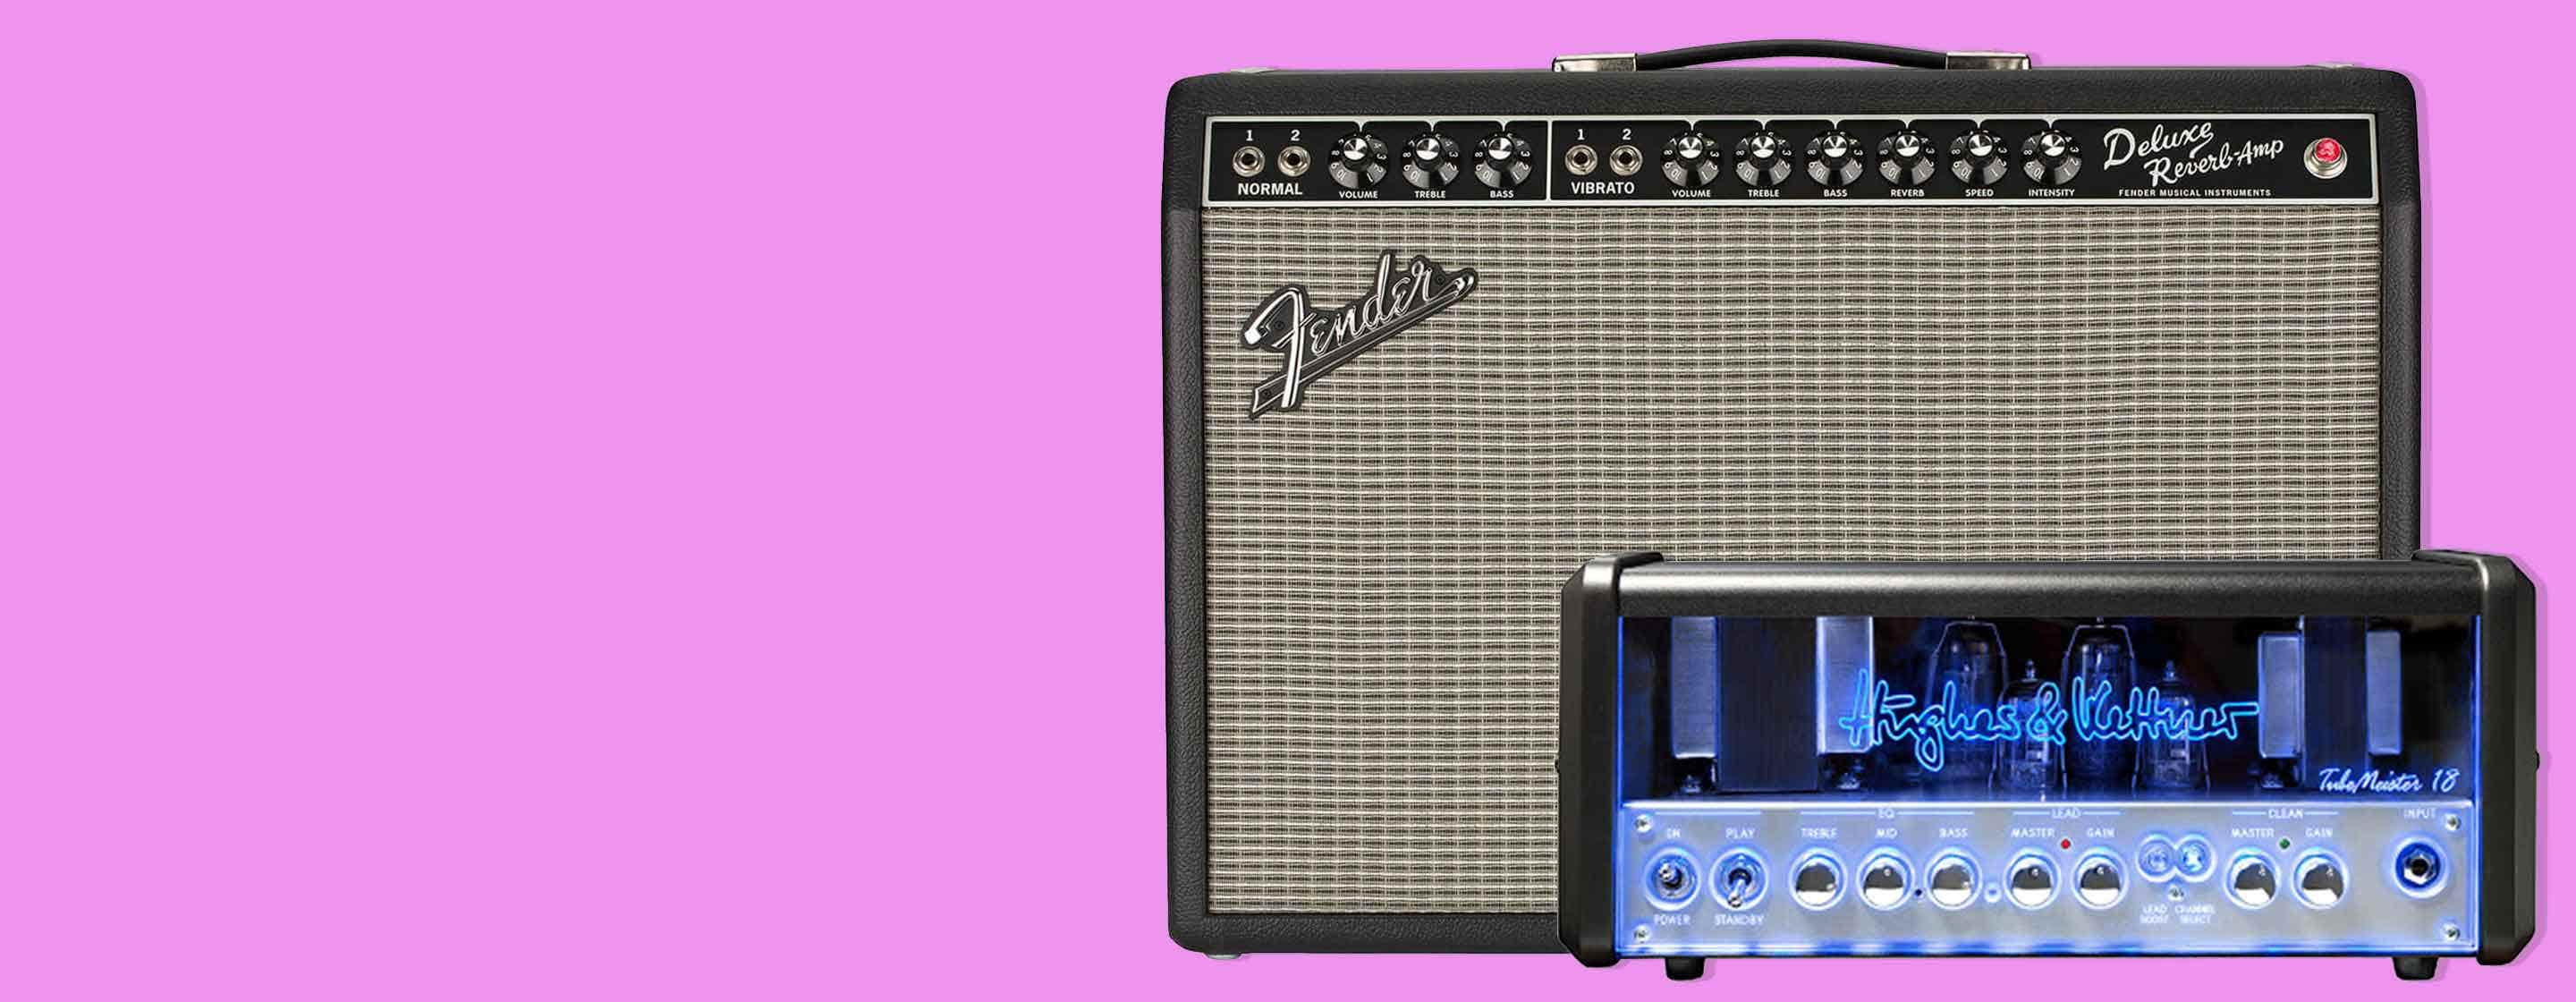 Tube vs. Solid State Amps